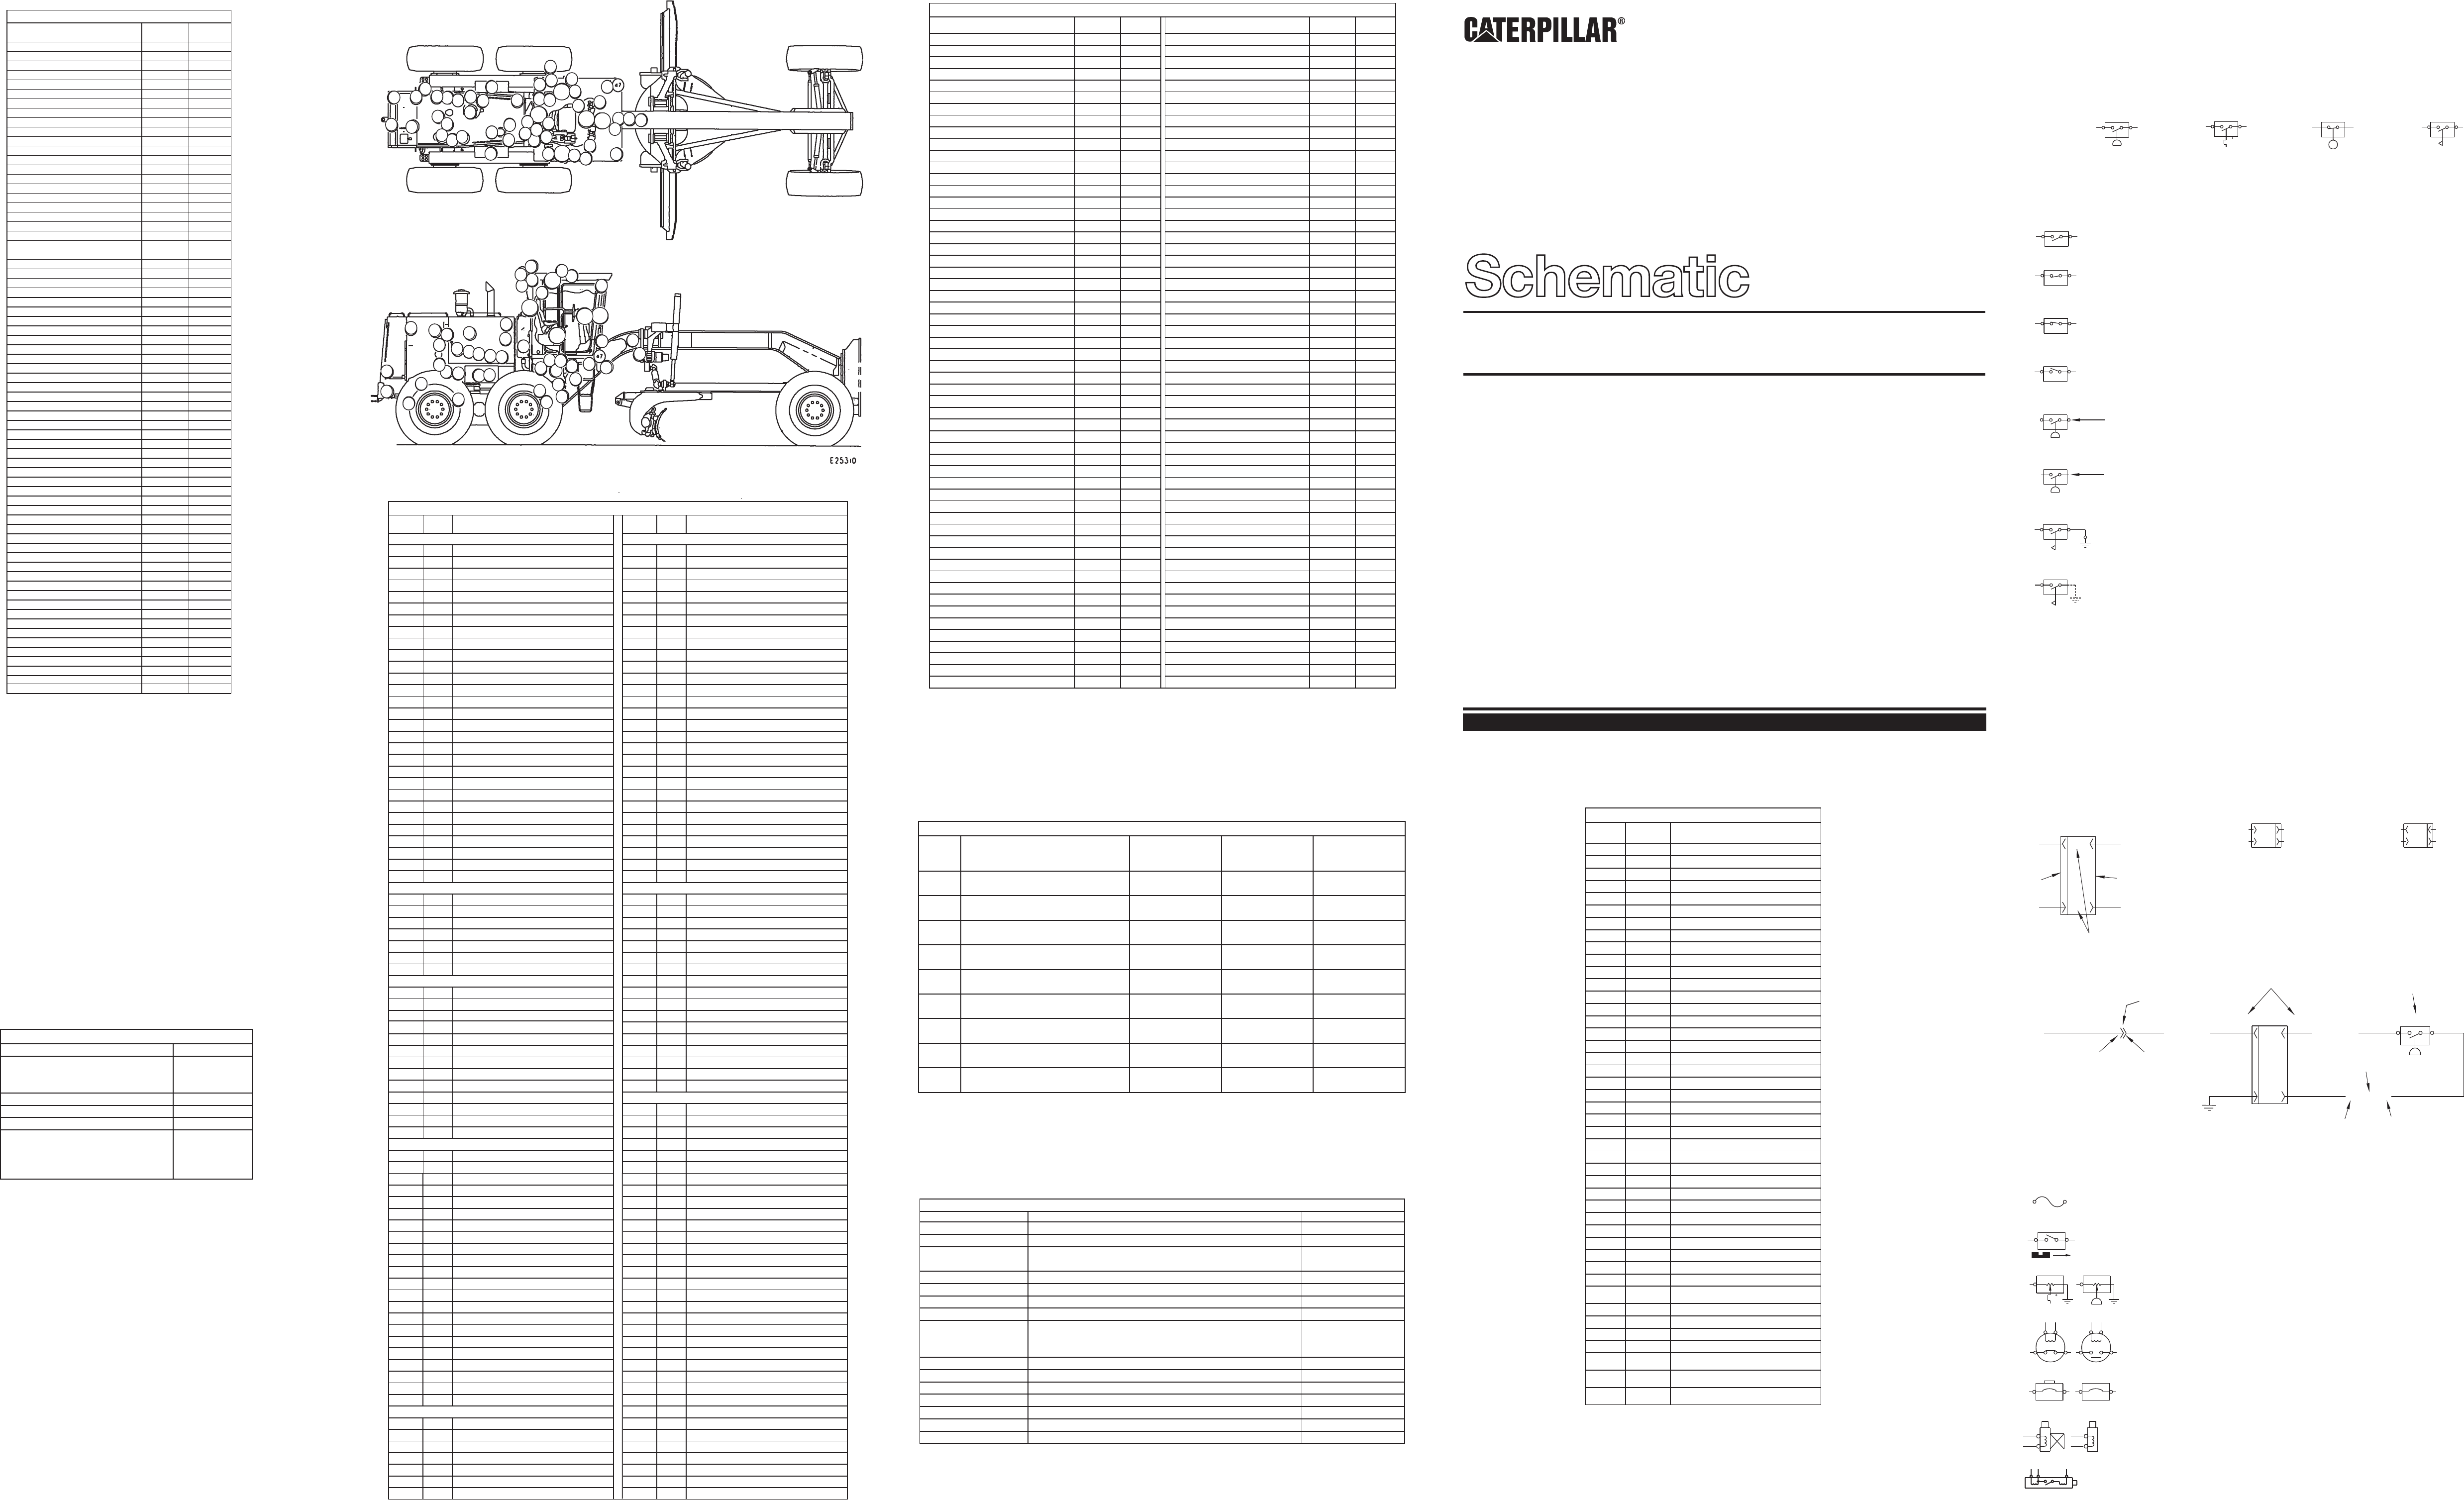 120h mg es version electrical system schematic  �  1998 caterpillar